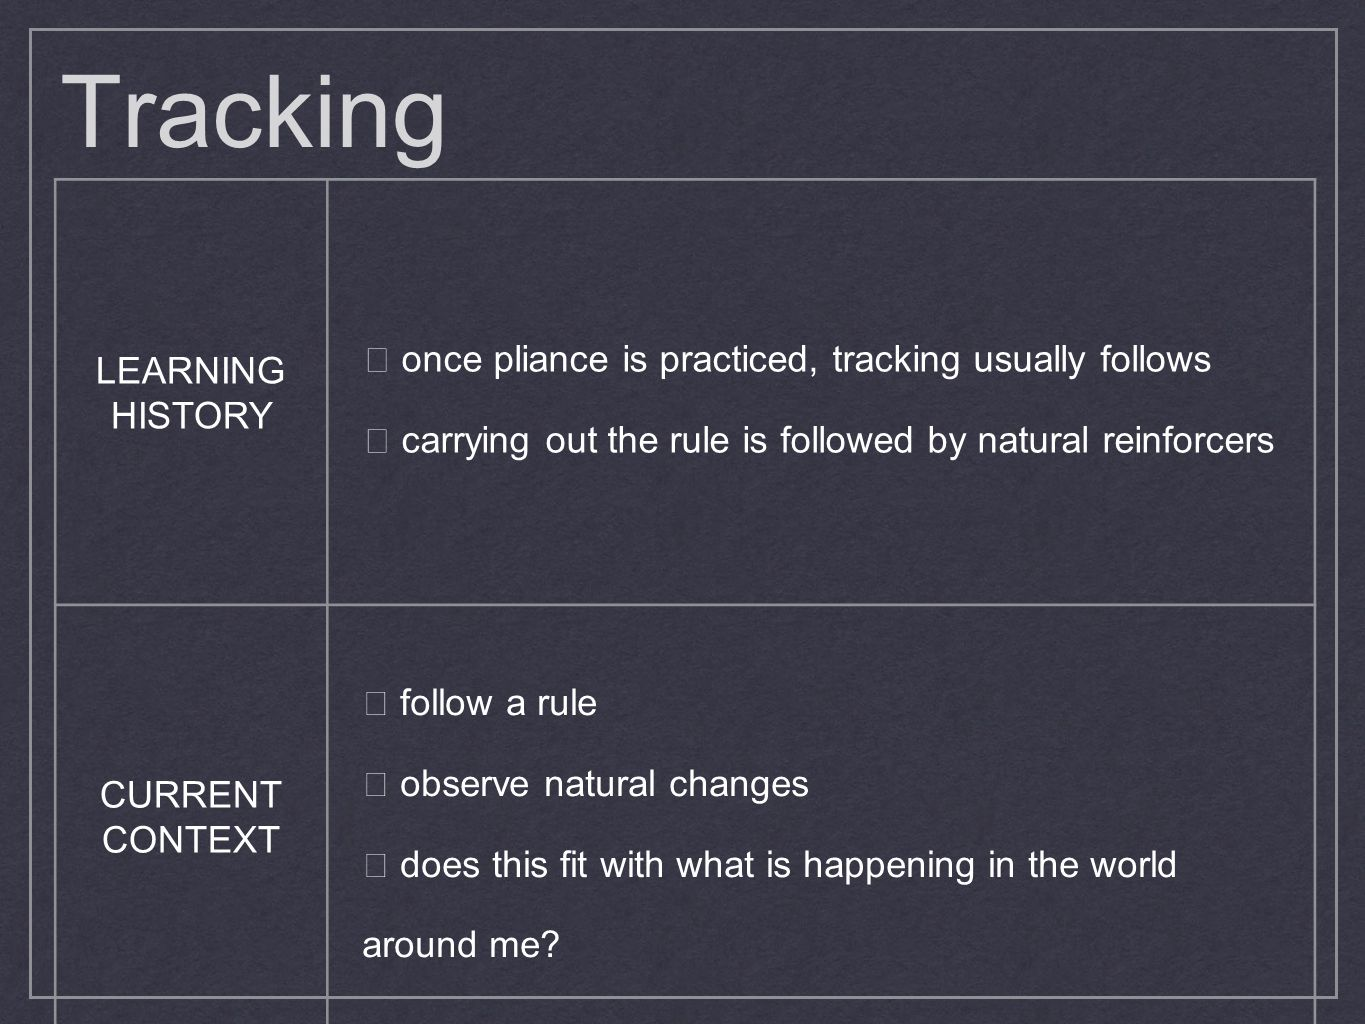 Tracking LEARNING HISTORY ★ once pliance is practiced, tracking usually follows ★ carrying out the rule is followed by natural reinforcers CURRENT CONTEXT ★ follow a rule ★ observe natural changes ★ does this fit with what is happening in the world around me